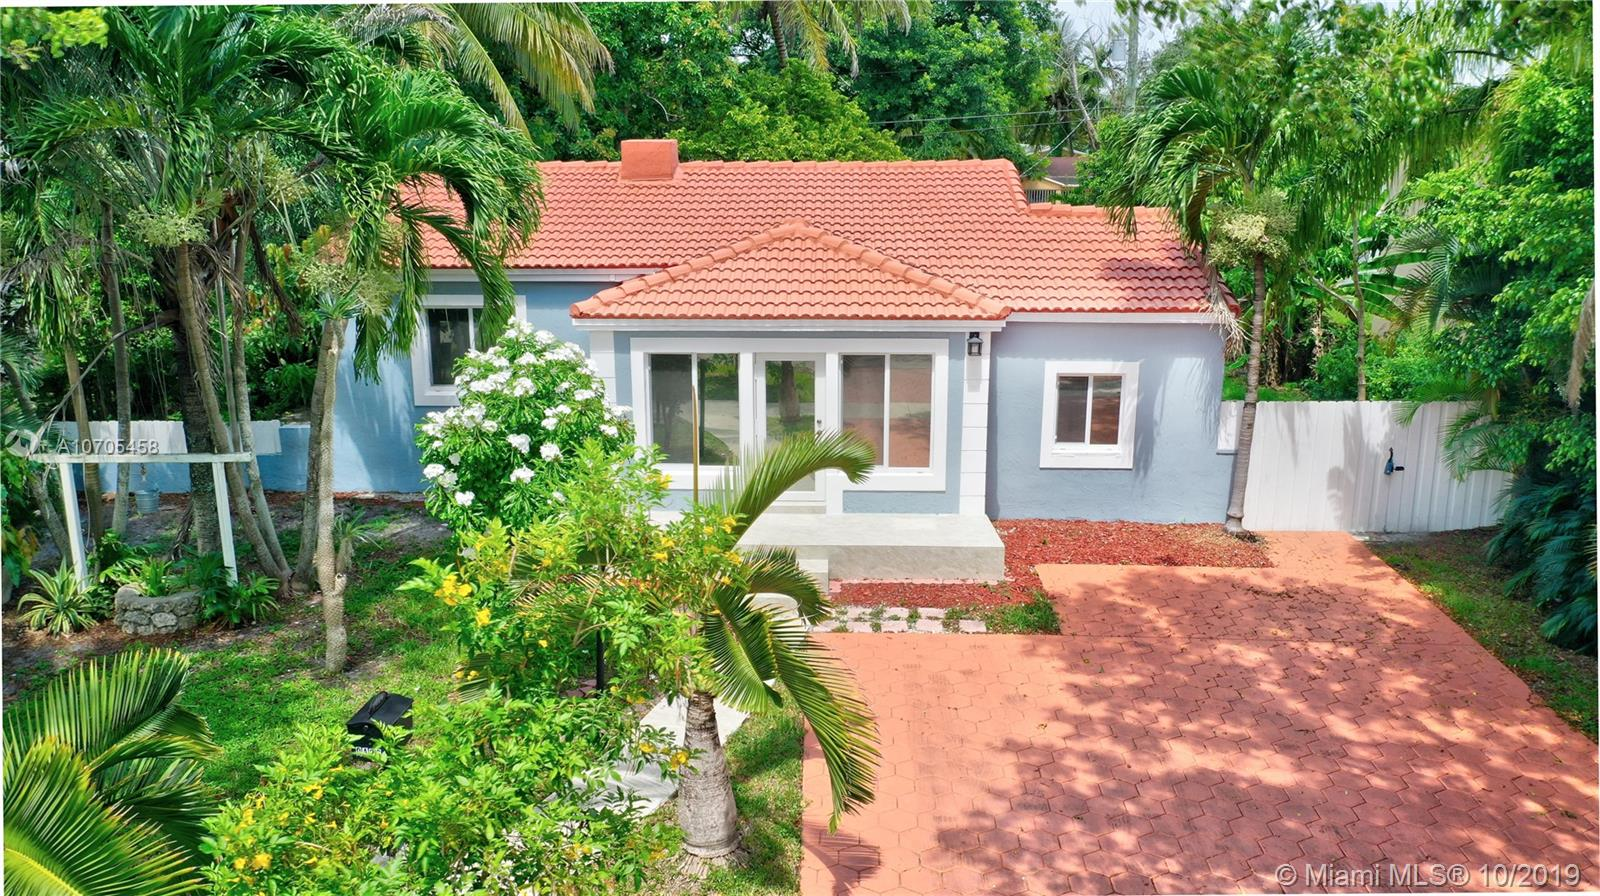 One of Miami Shores 3 Bedroom Homes for Sale at 9426 NW 2nd Pl